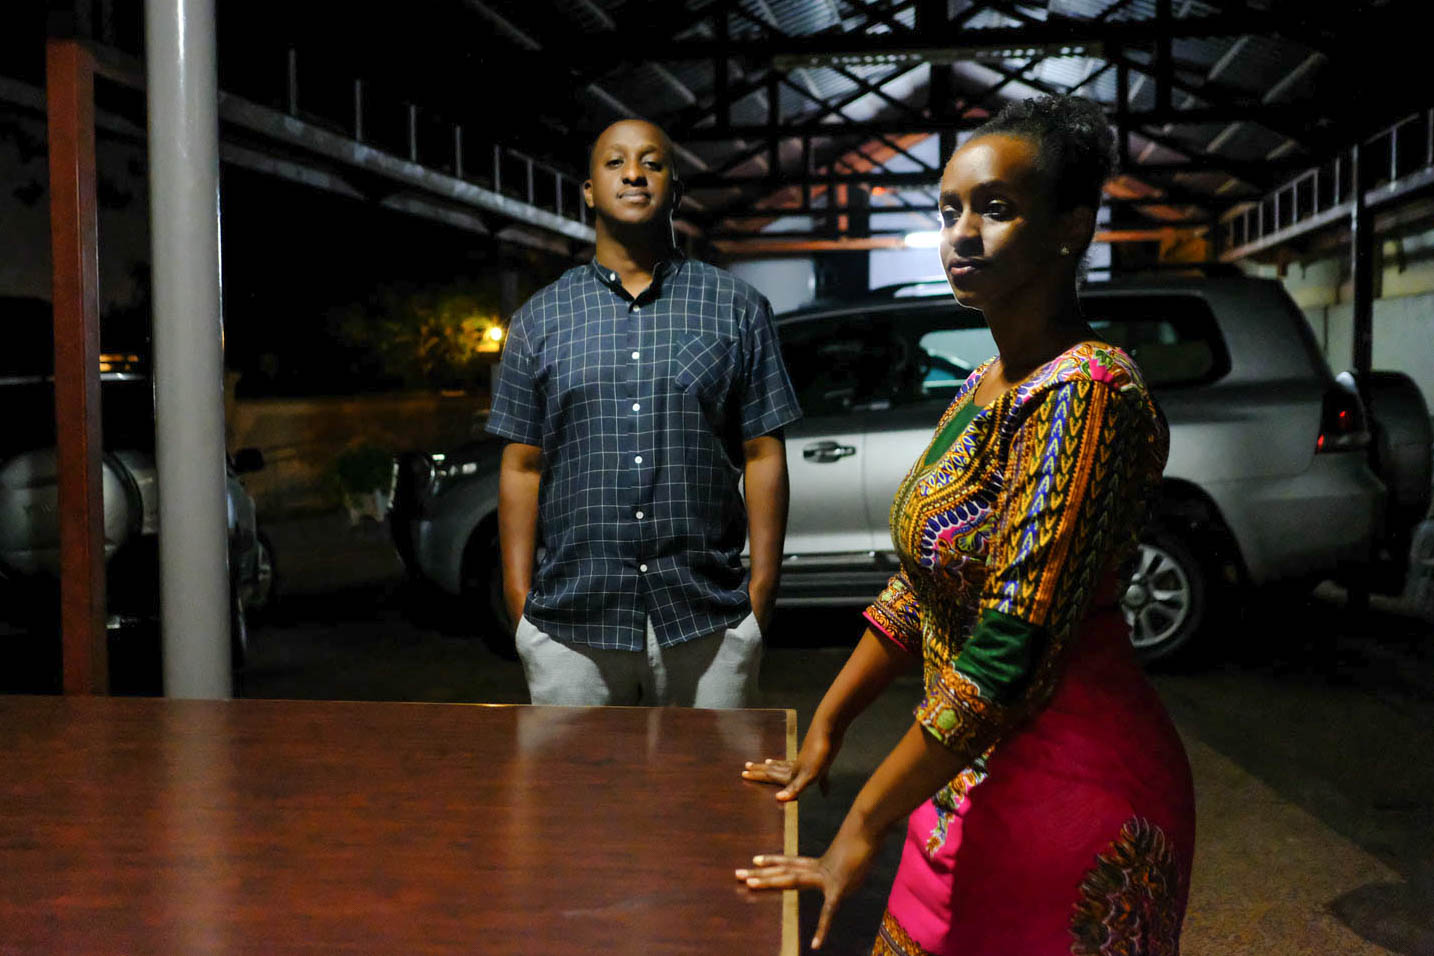 Arioste and Anne Rwigara, at home in Kigali.